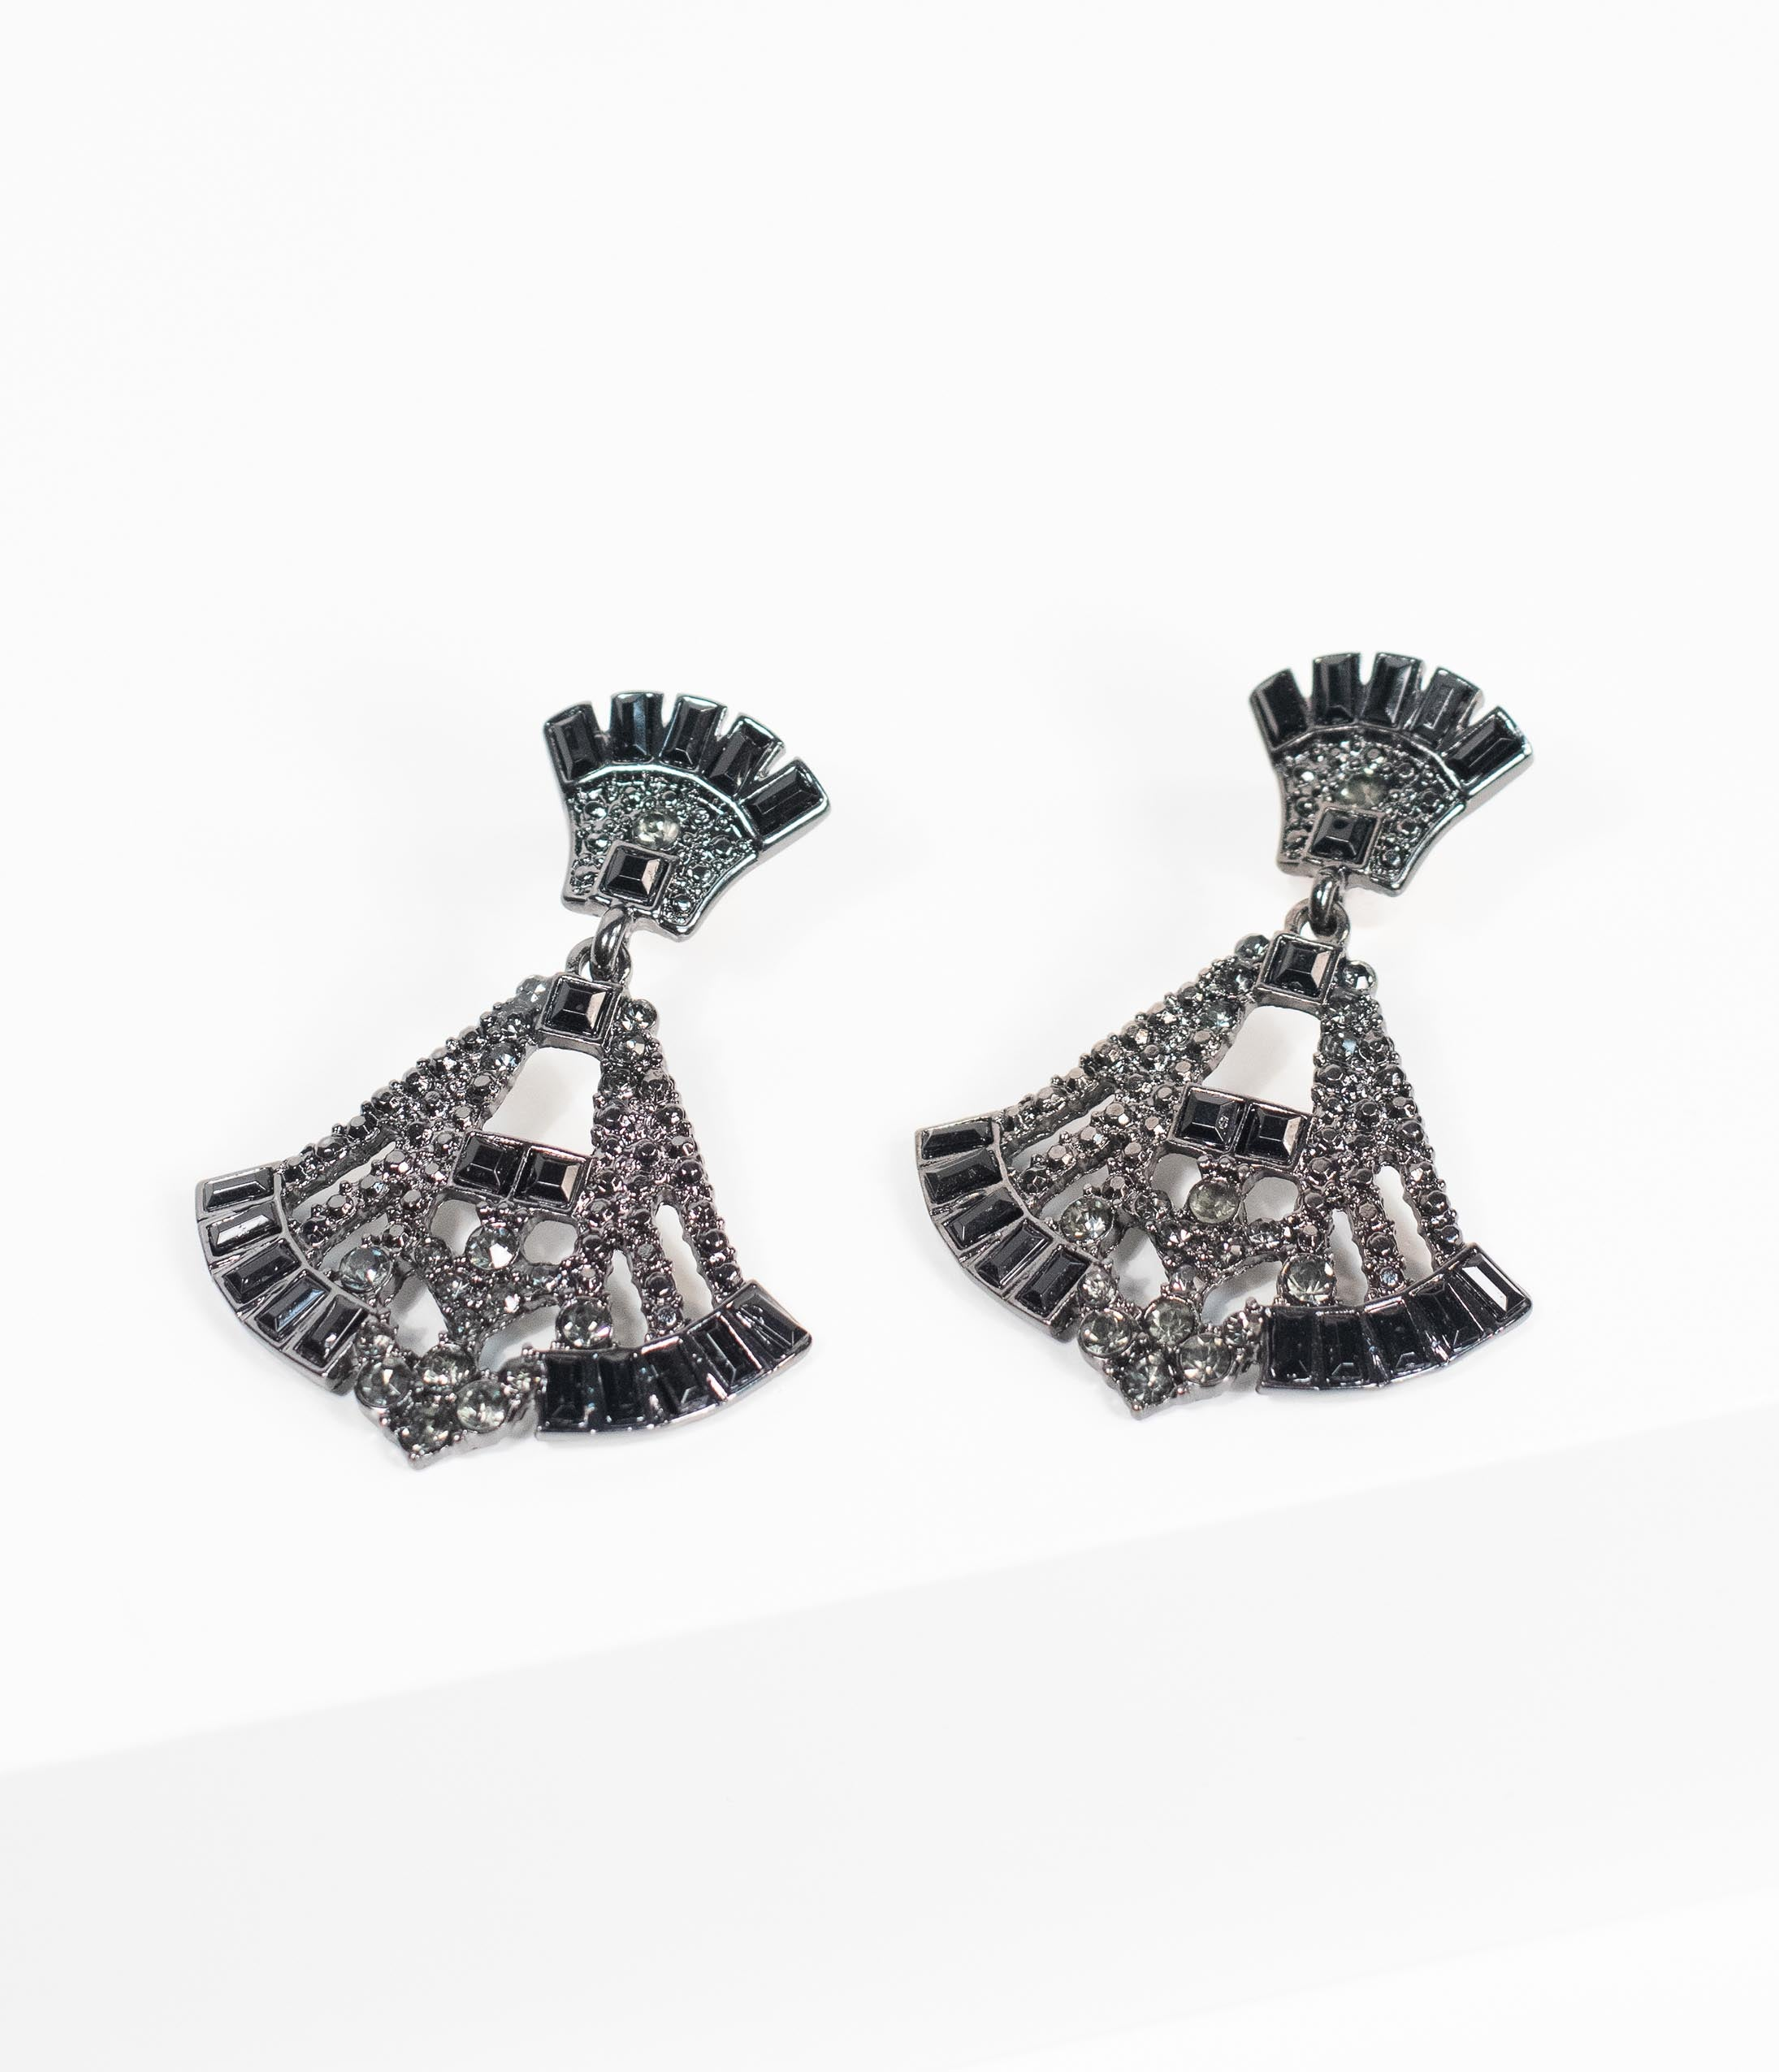 1920s Jewelry Styles History Deco Style Black Rhinestone Drop Fan Earrings $22.00 AT vintagedancer.com